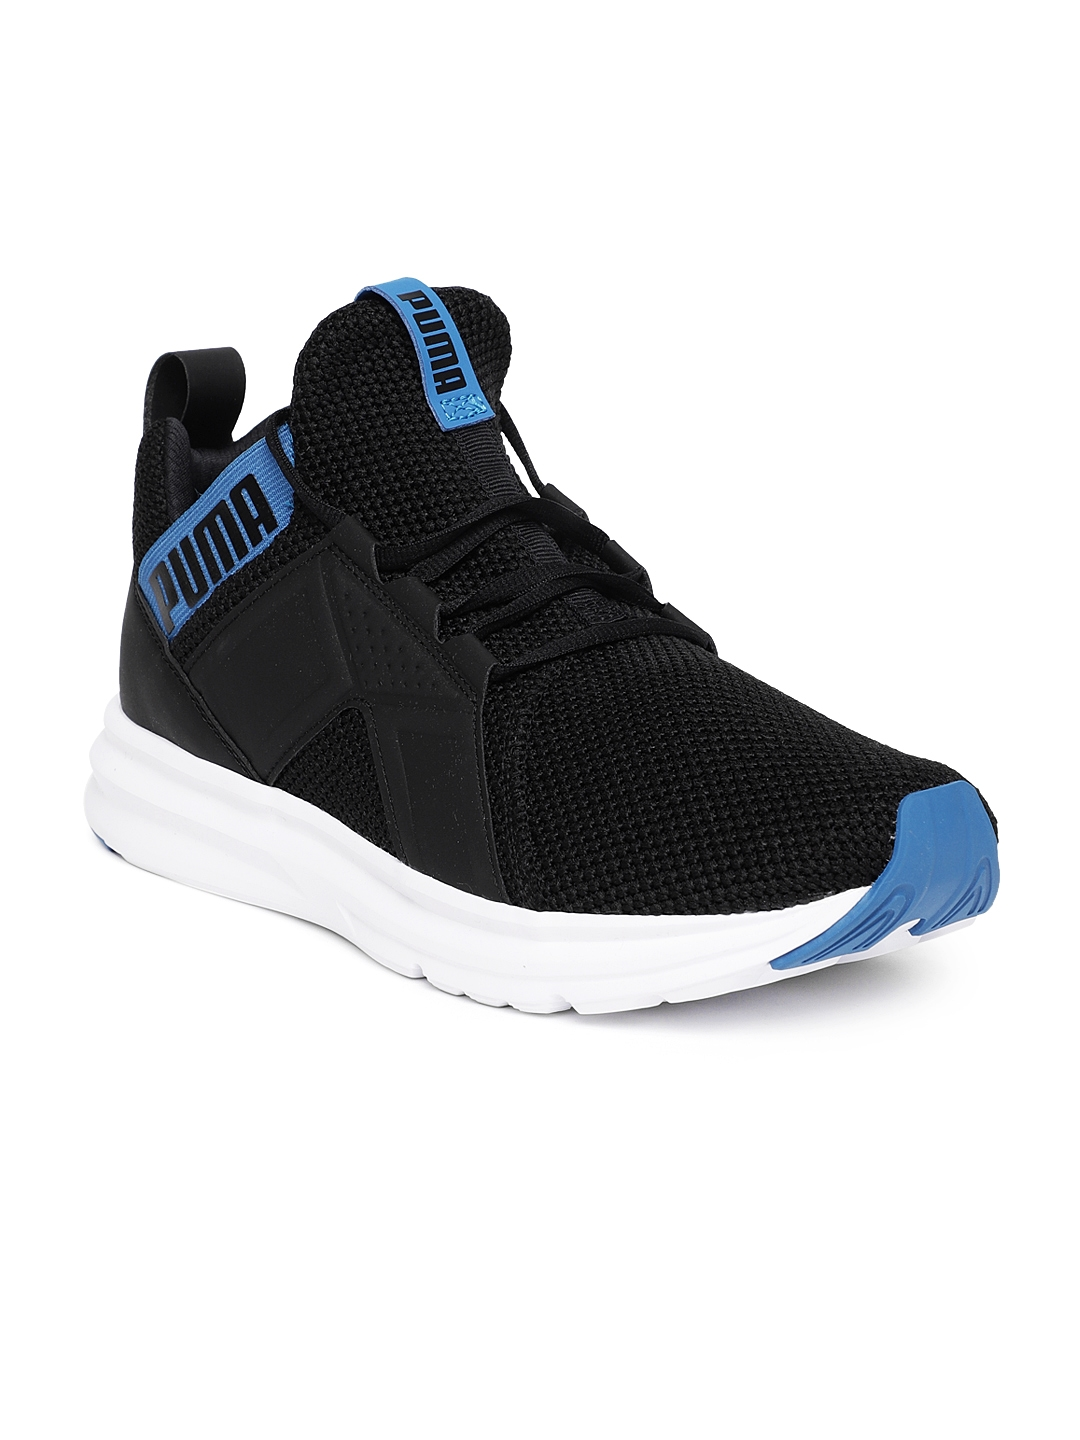 29bb955a1bc Buy Puma Men Black   Blue Enzo Weave Training Shoes - Sports Shoes ...